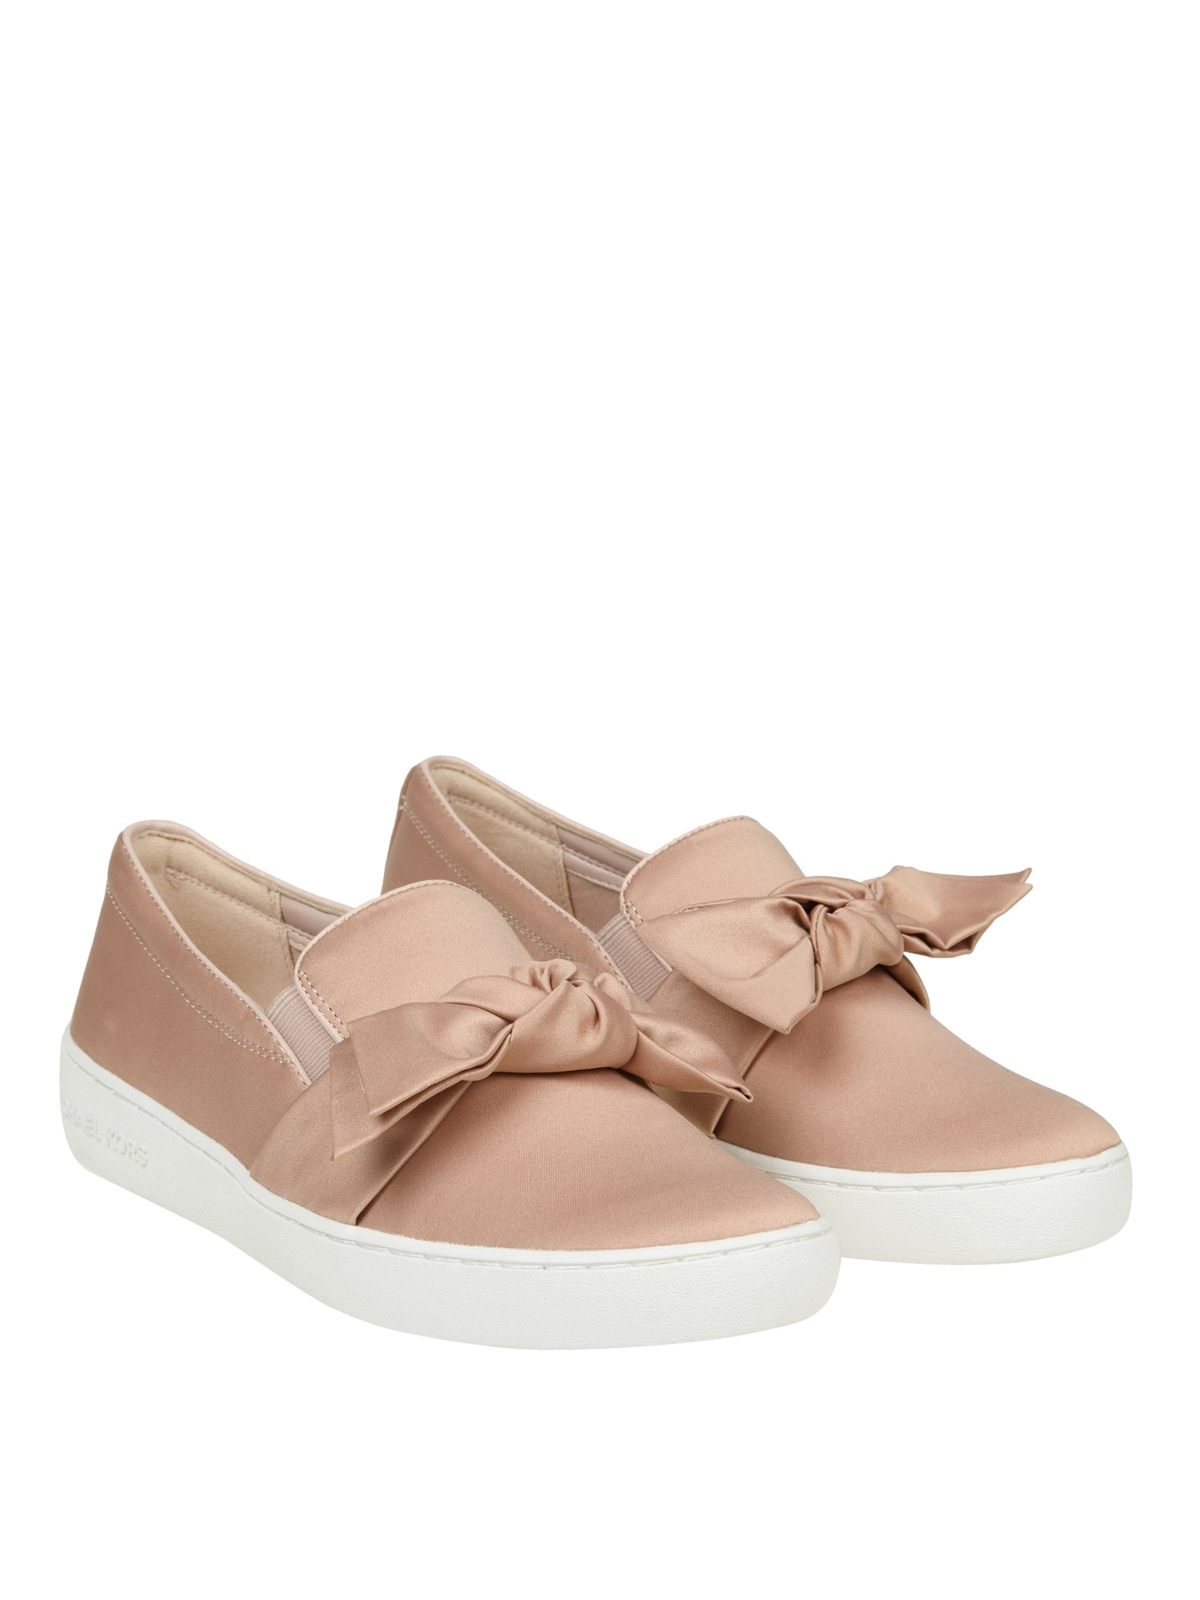 8735c37bc8e8 Michael Kors - Willa pink satin slip-ons - trainers - 43R8WIFP1D 187